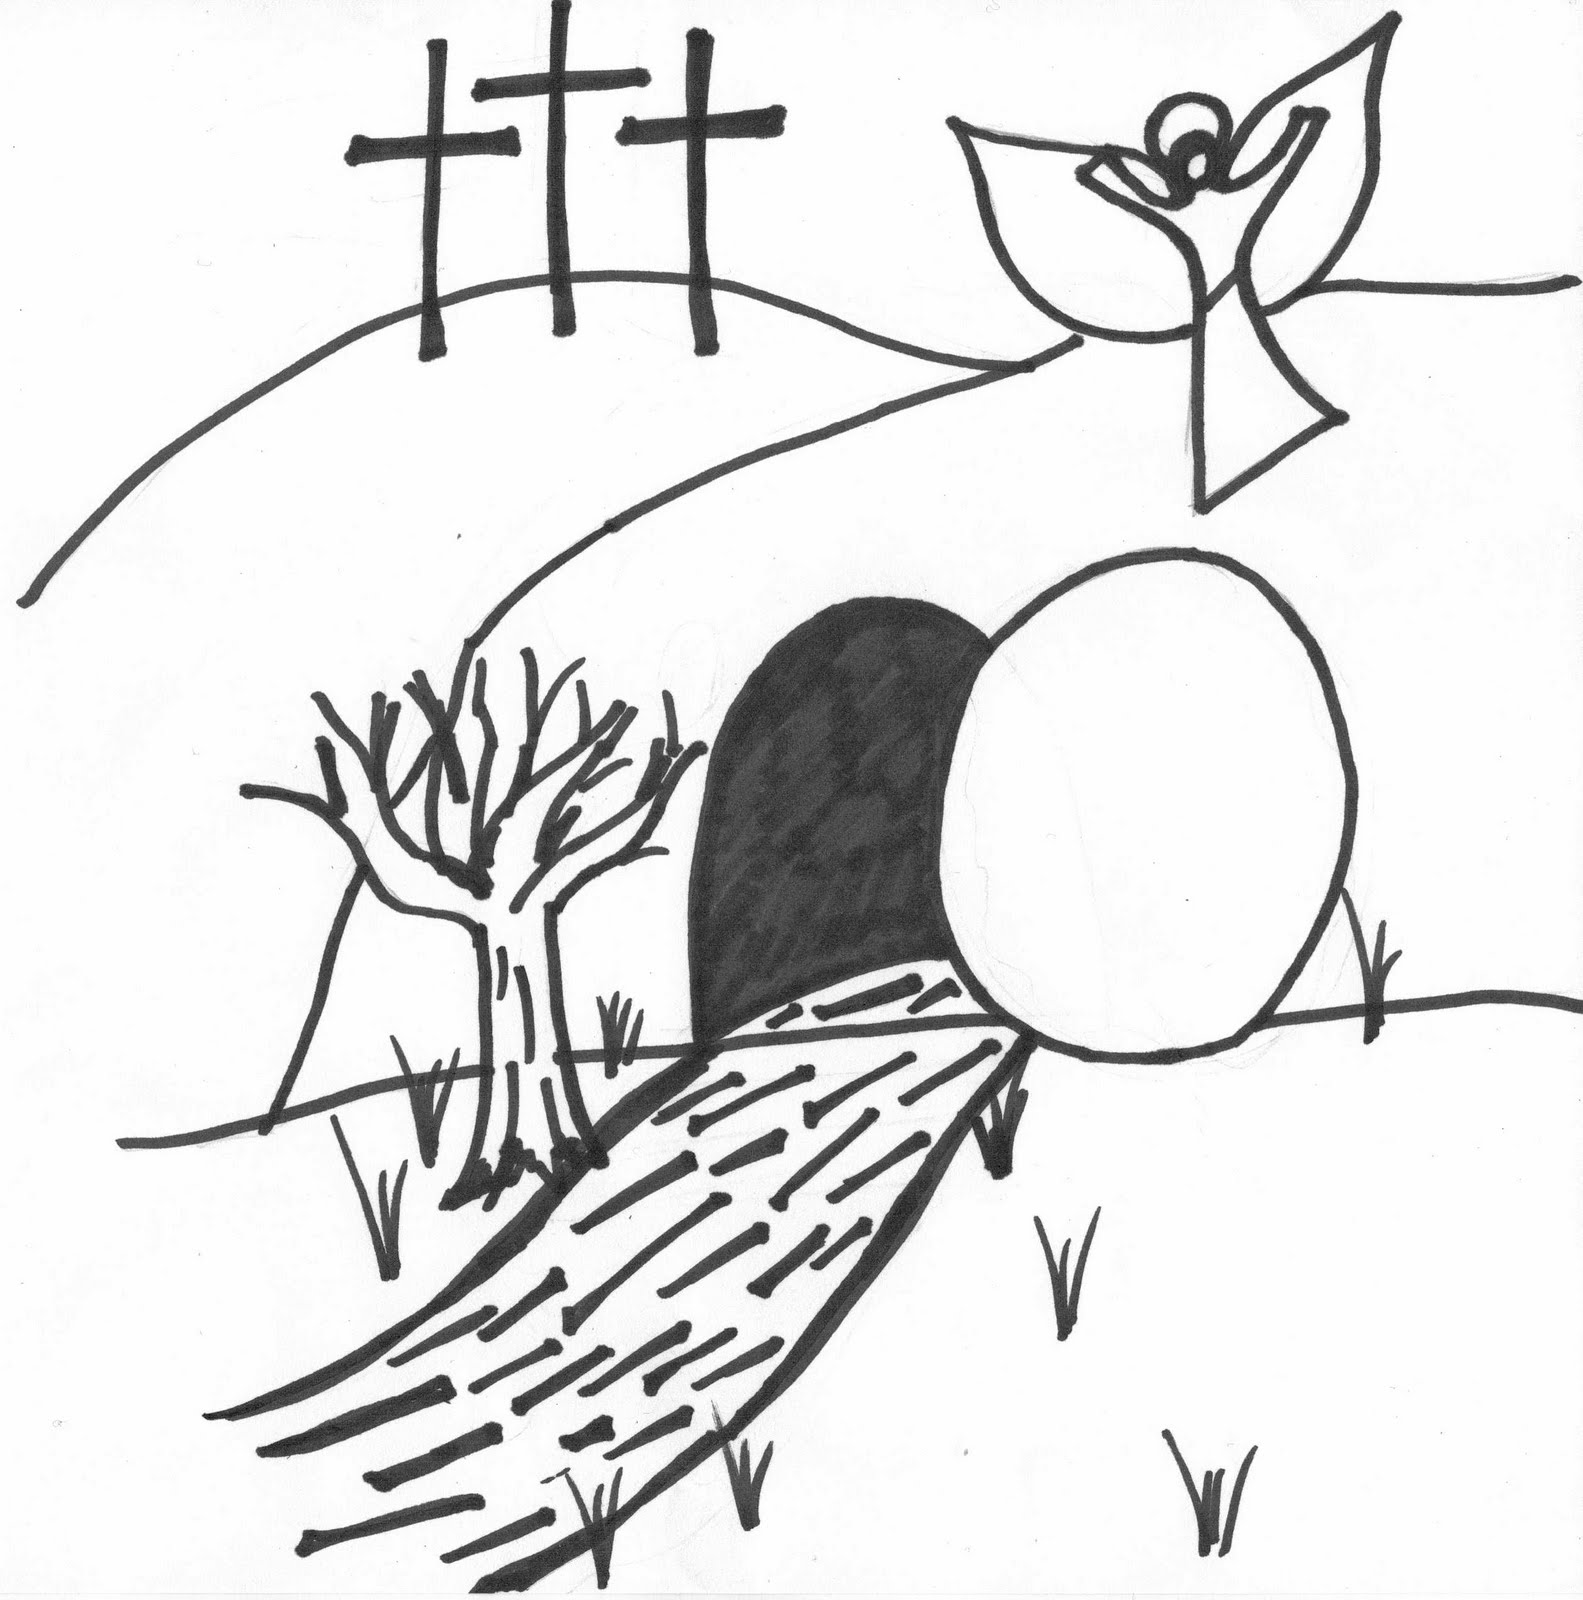 empty tomb Colouring P...